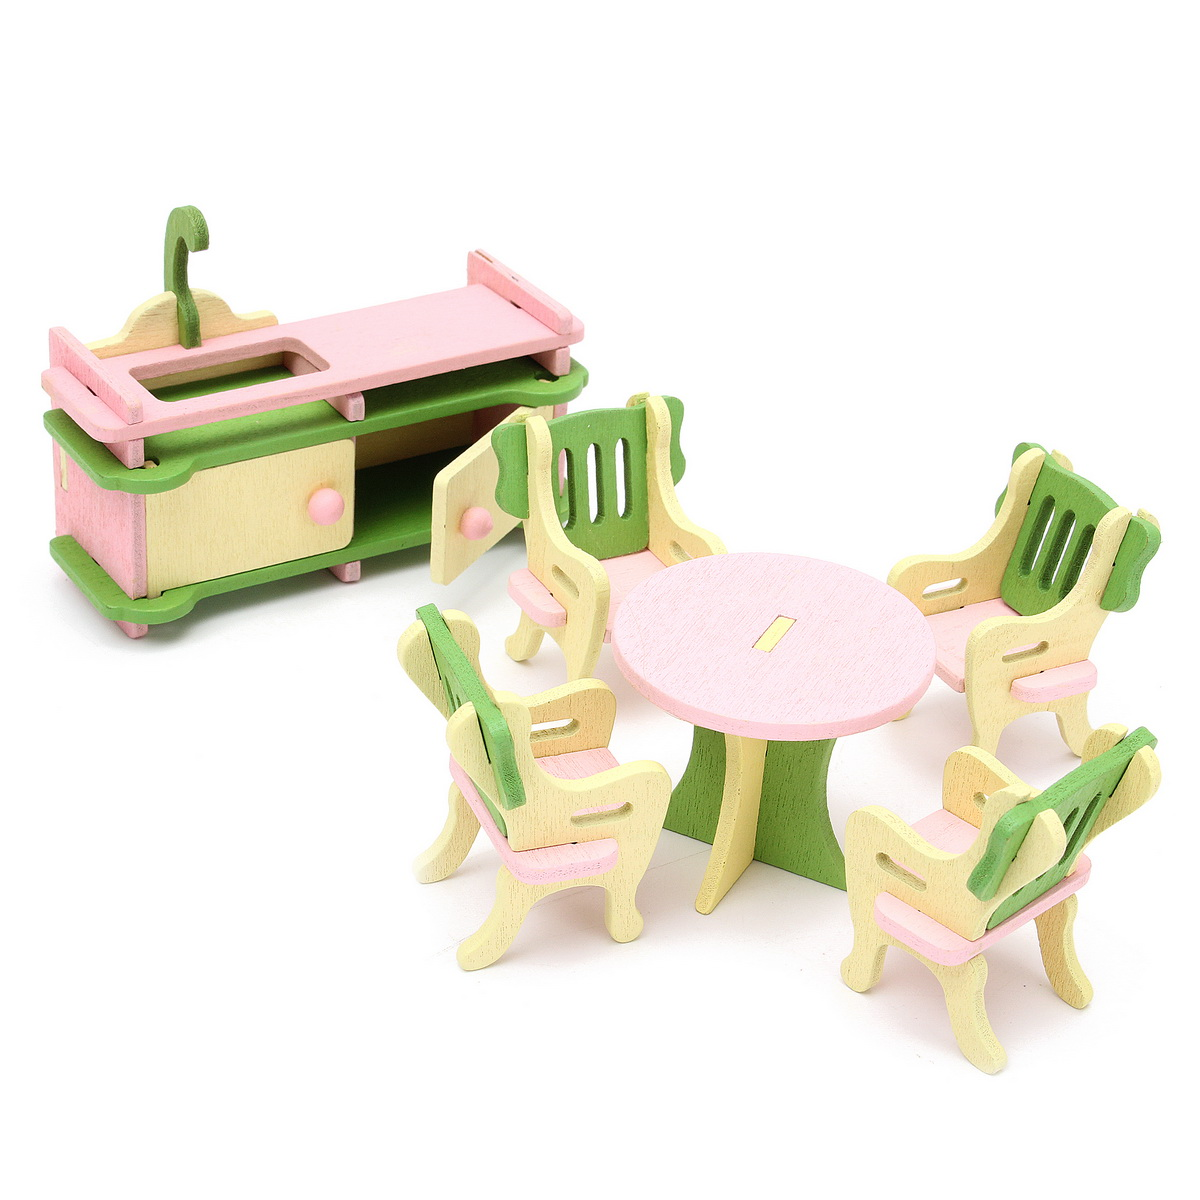 Wood Family Doll Dollhouse Furniture Set, Pink Miniature Kitchen/Guest Room/Bathroom/Bedroom House Furniture Dollhouse Decoration accessories Kids Toy Gift,Kitchen color